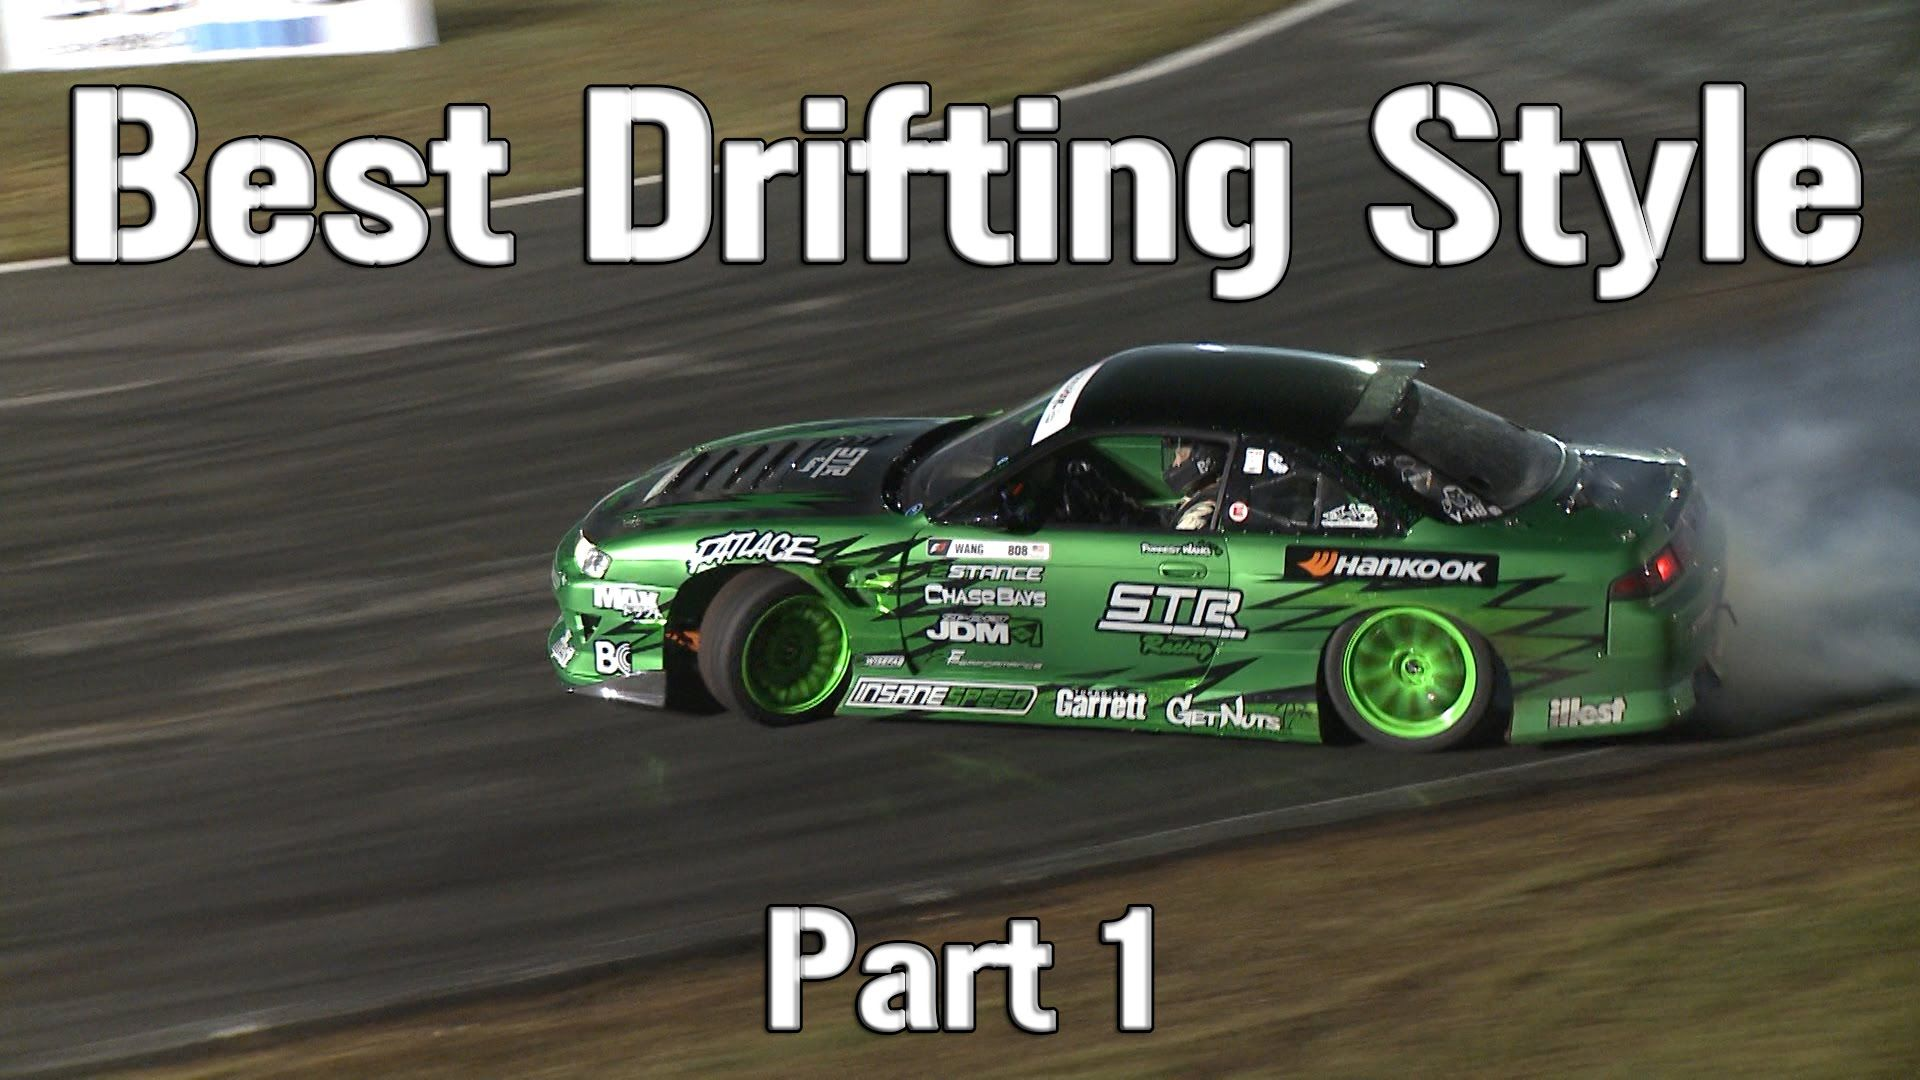 Who has the best drifting style in formula d forrest